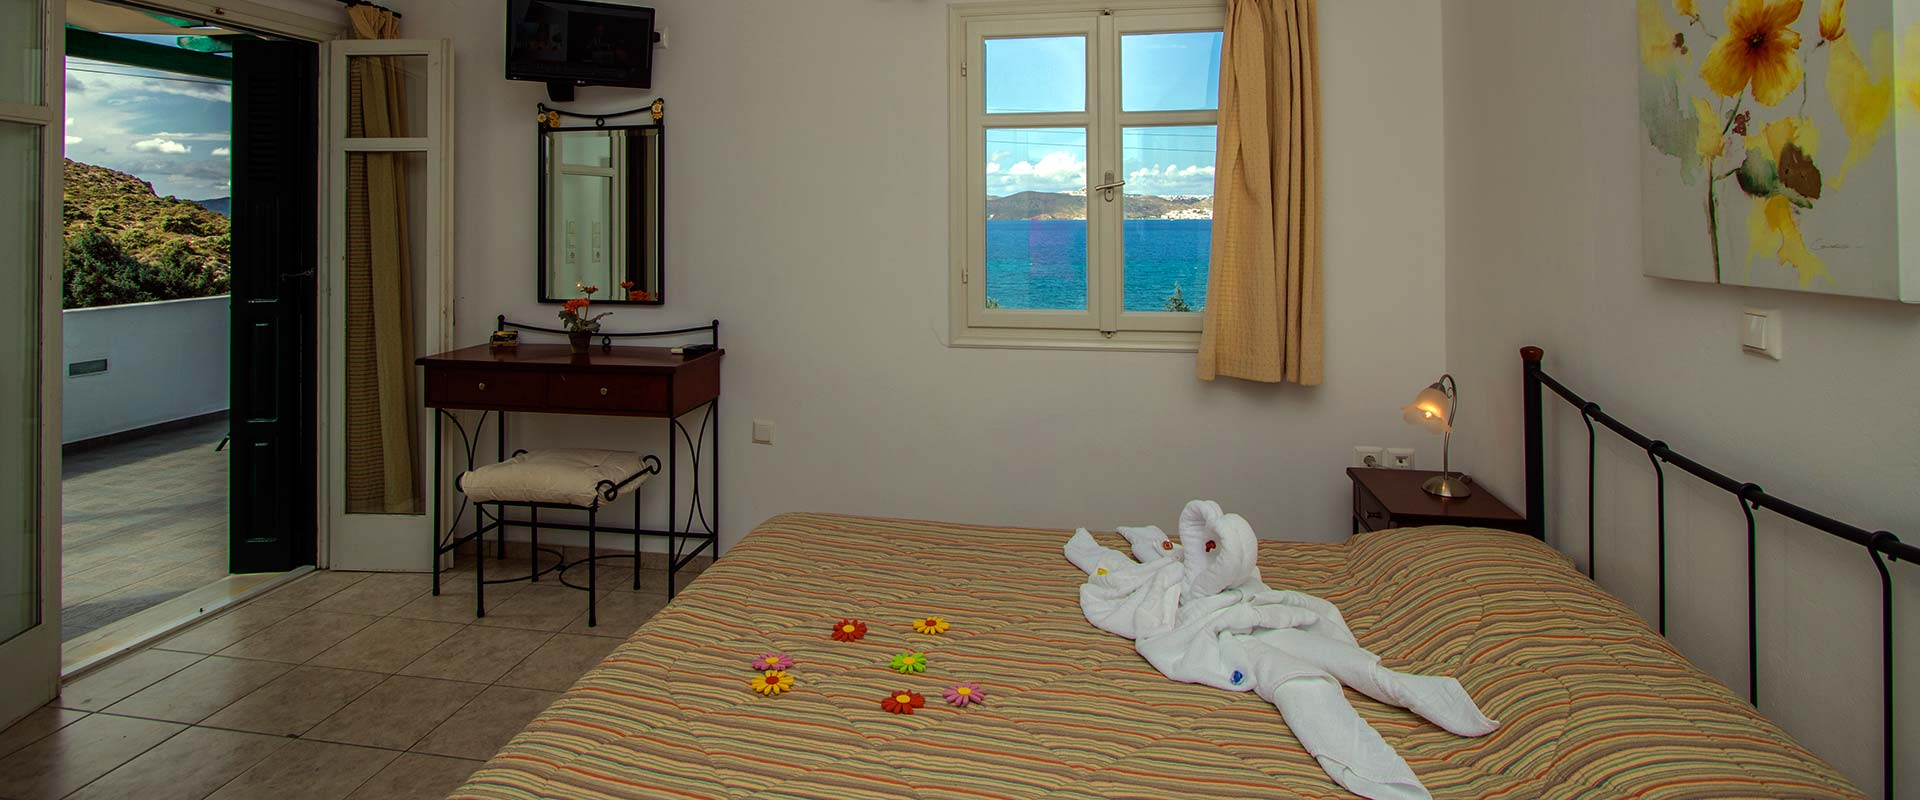 Hotel in Milos - Rooms in Milos